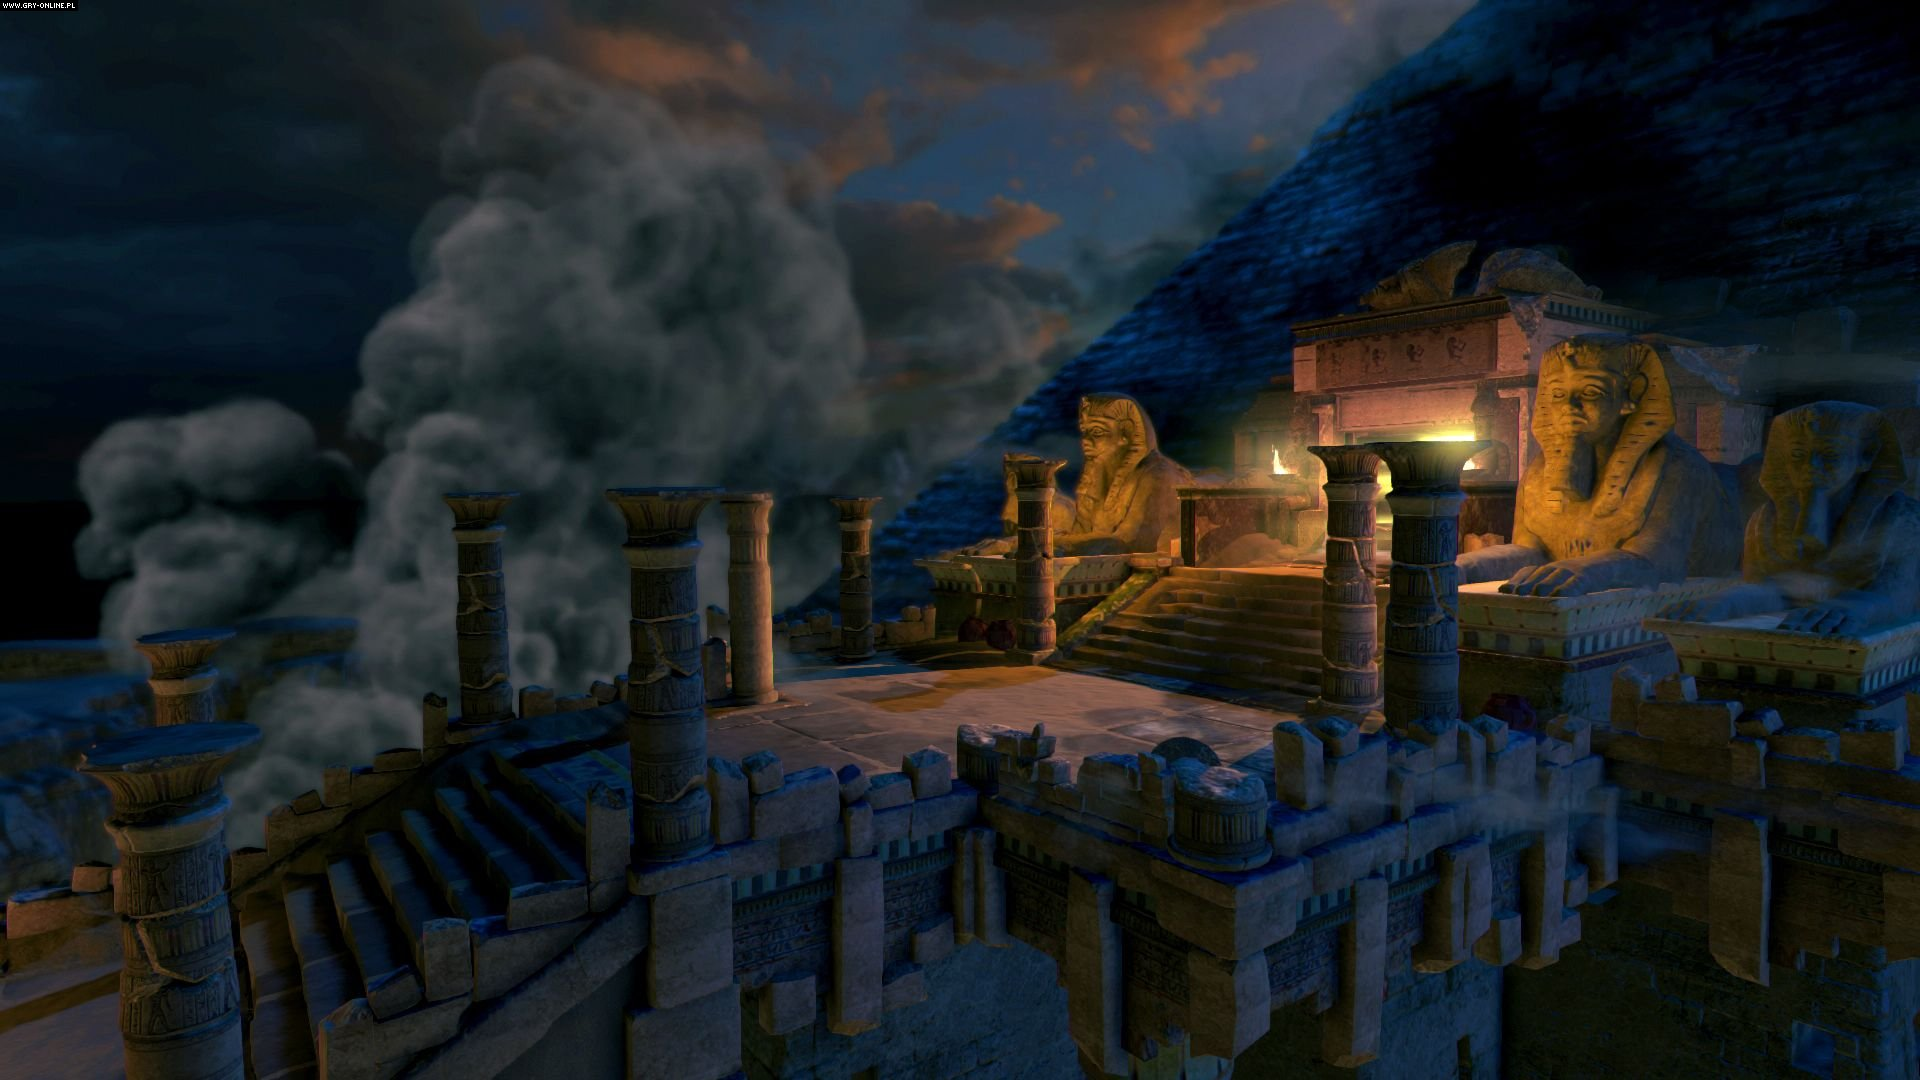 Lara Croft and the Temple of Osiris PC, PS4, XONE Gry Screen 6/8, Nixxes Software, Square-Enix / Eidos